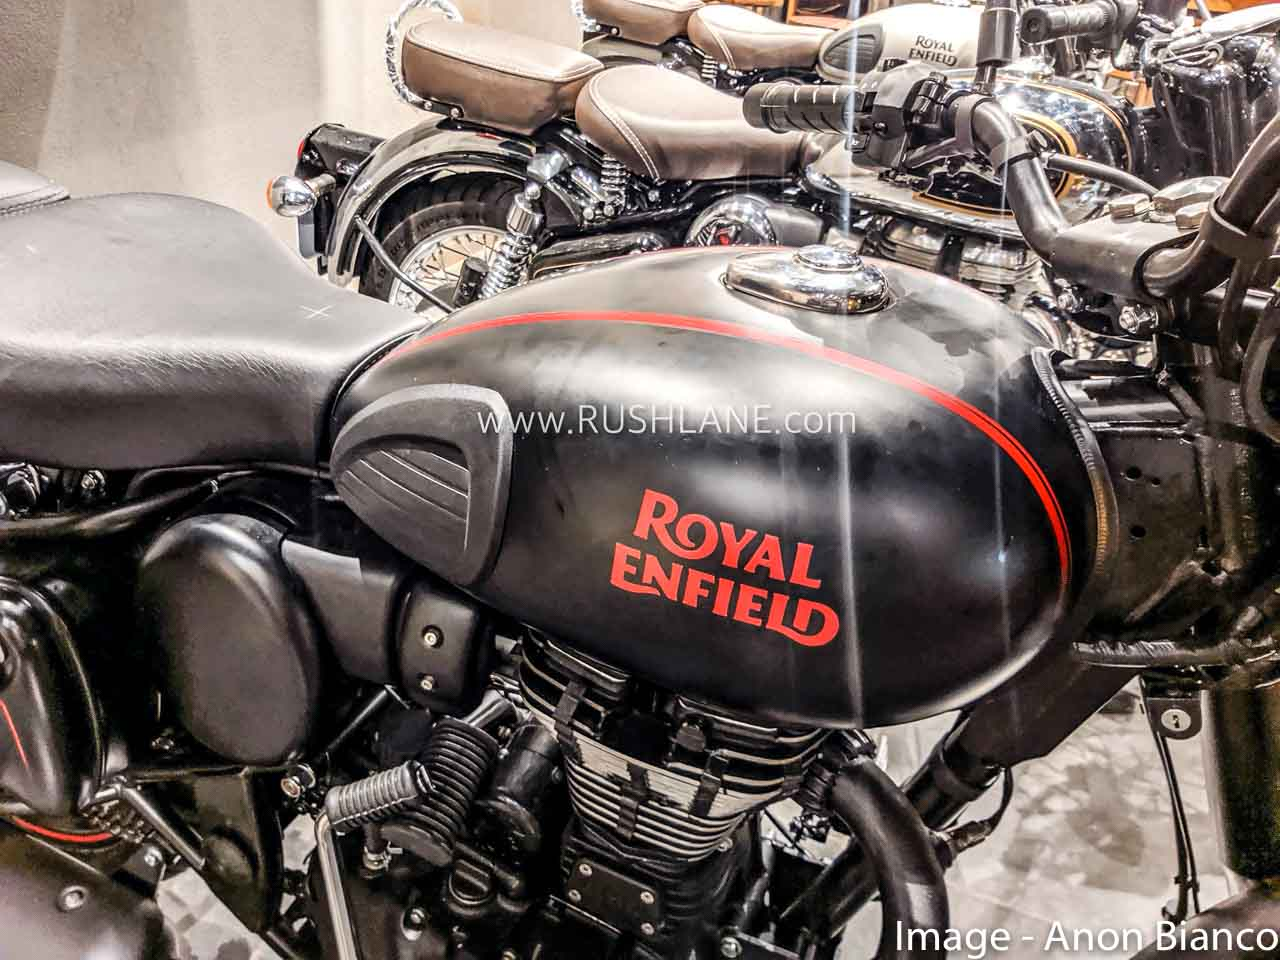 Royal Enfield Classic 350 Bs6 Test Ride Video